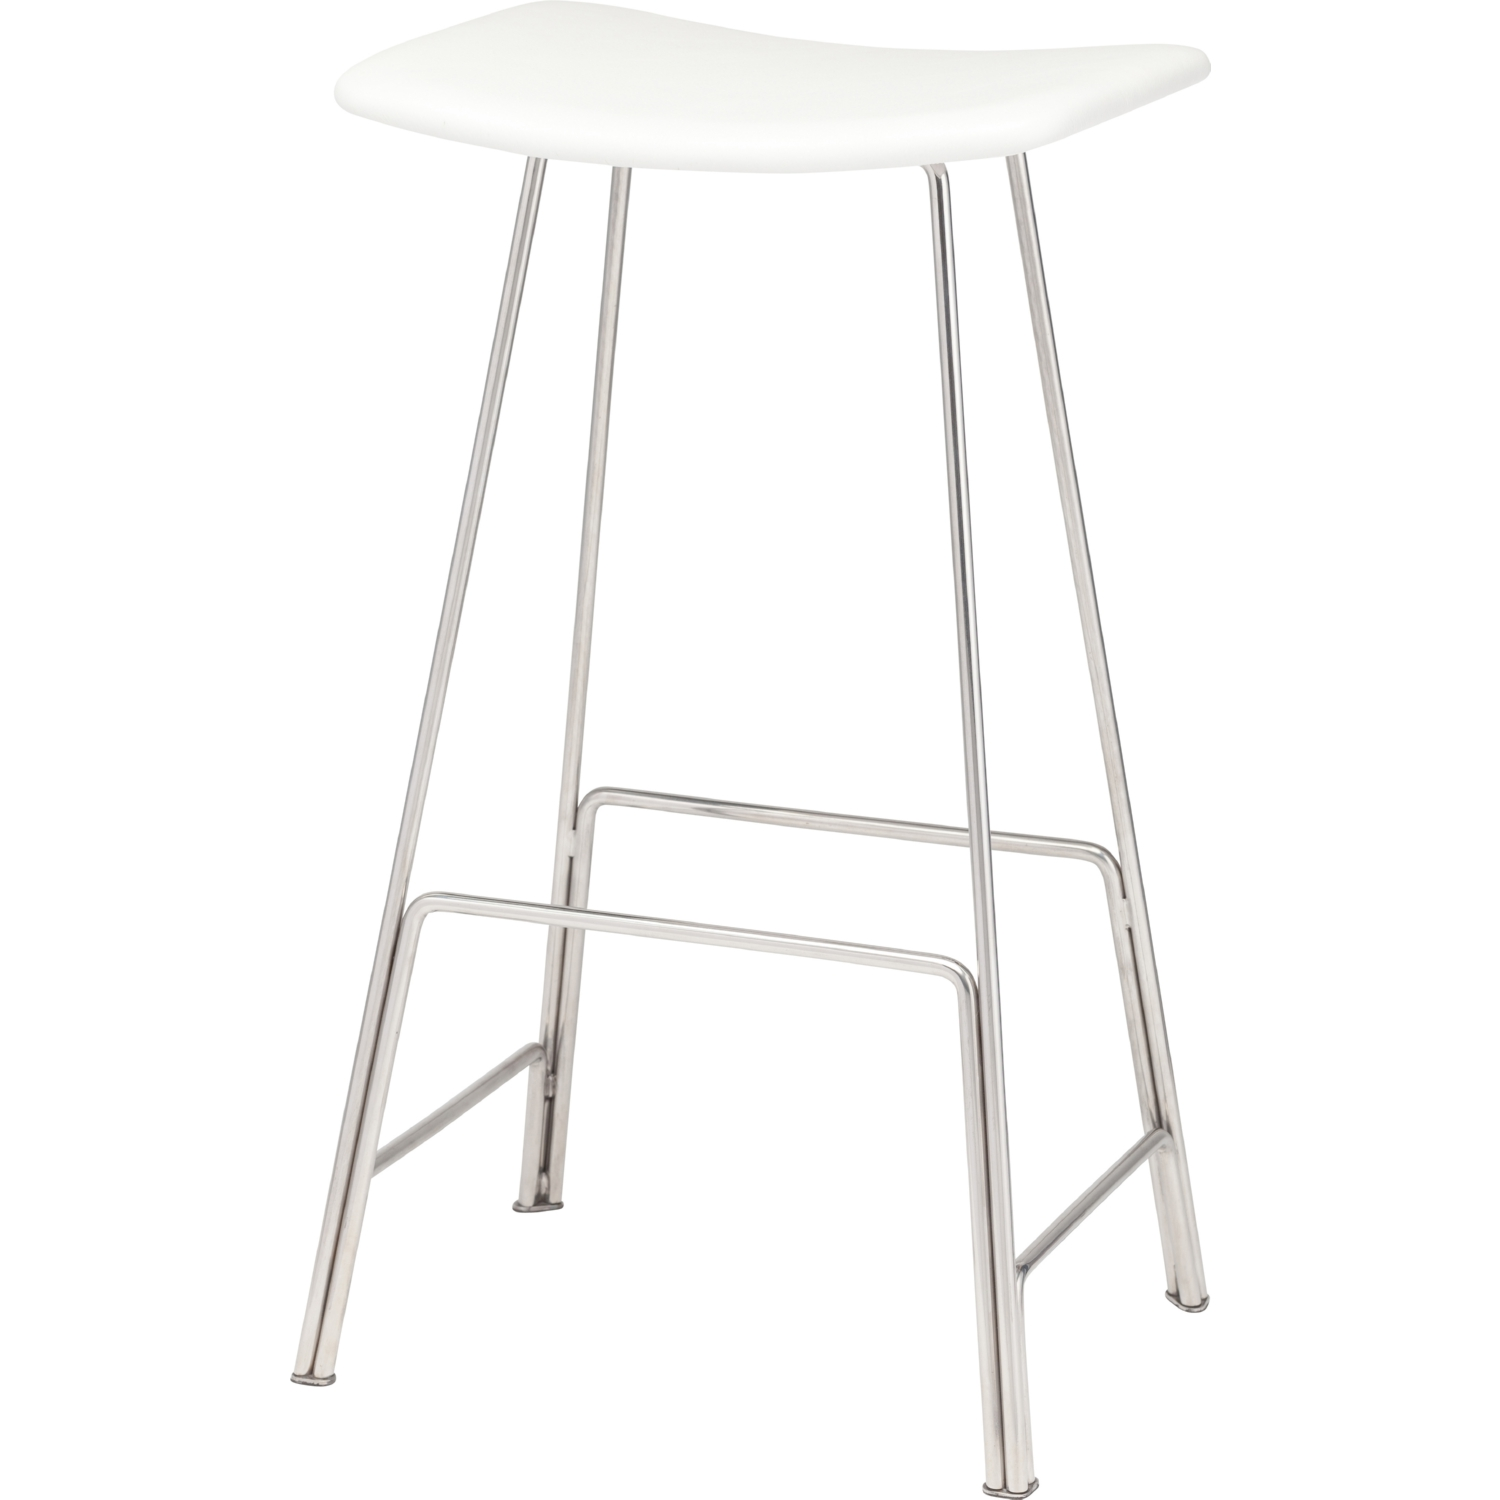 Remarkable Kirsten Counter Stool W White Leather Seat On Stainless Steel Base W Footrests By Nuevo Modern Furniture Pabps2019 Chair Design Images Pabps2019Com